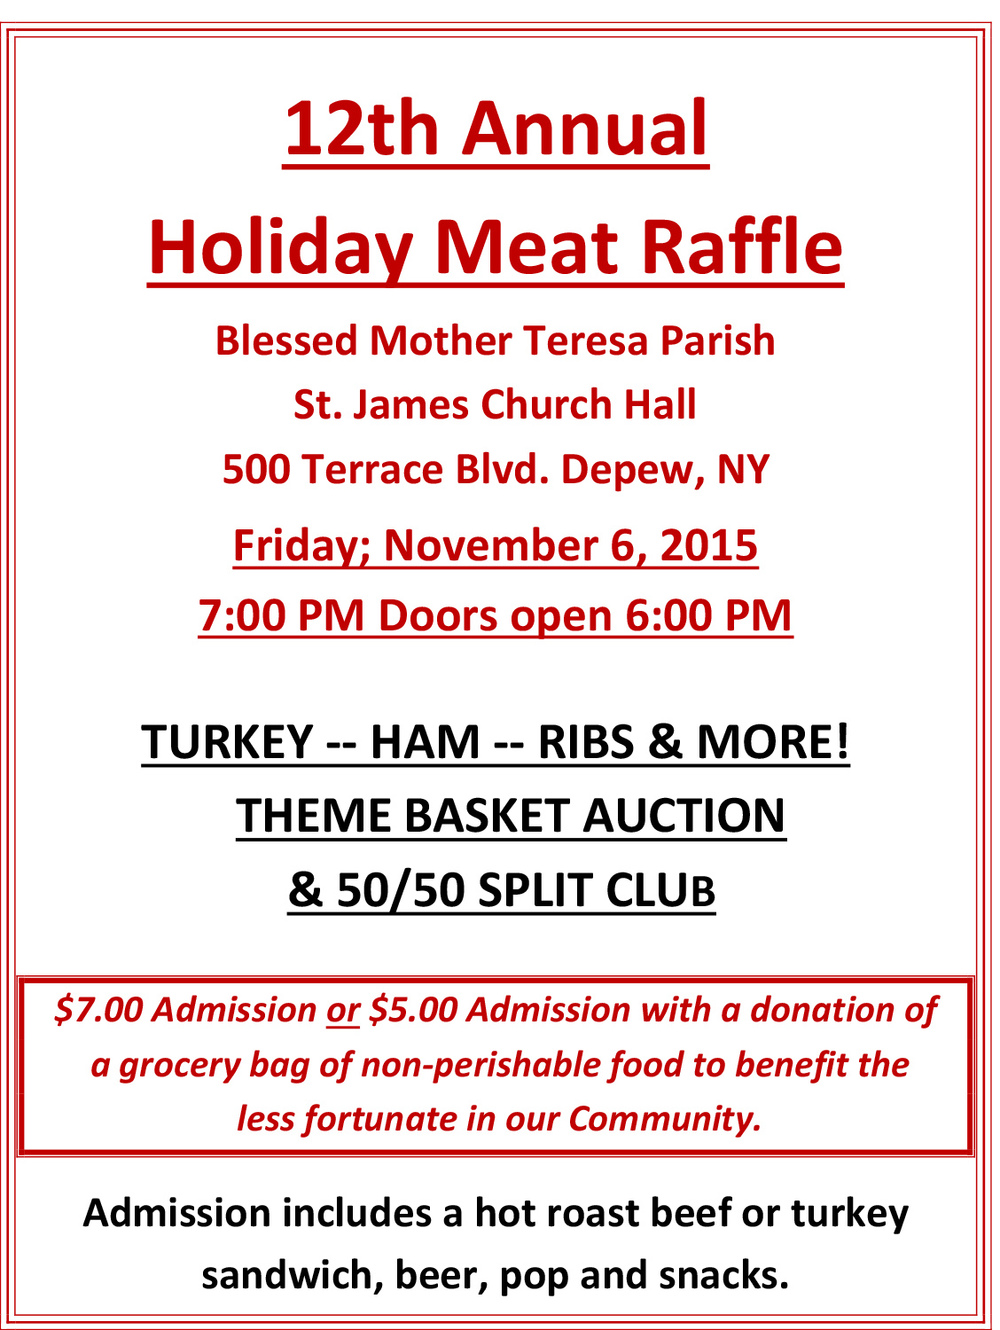 12th Annual Holiday Meat Raffle 110615.jpg